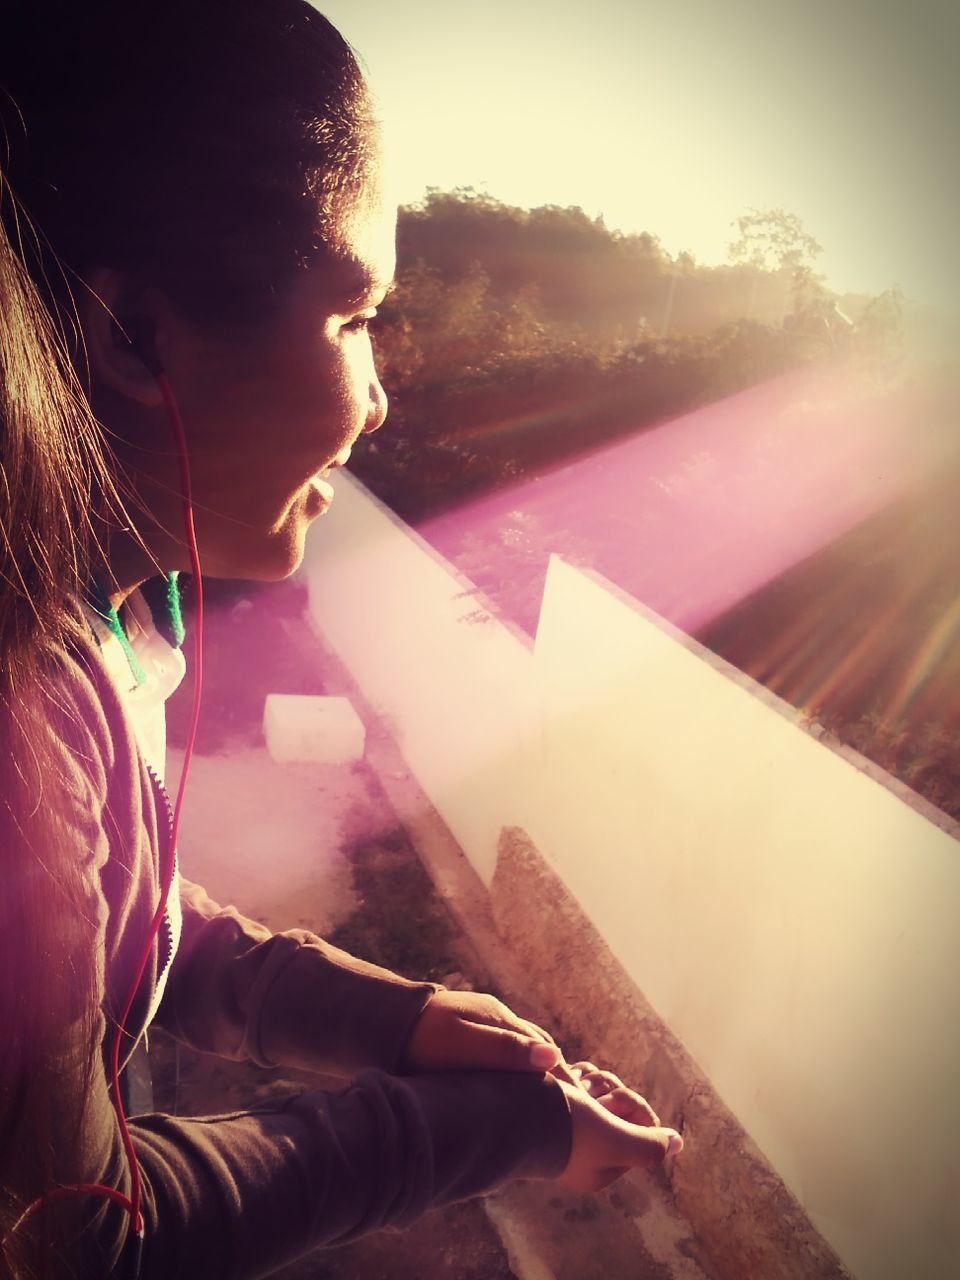 real people, one person, childhood, leisure activity, sunlight, elementary age, outdoors, sunset, day, nature, close-up, sky